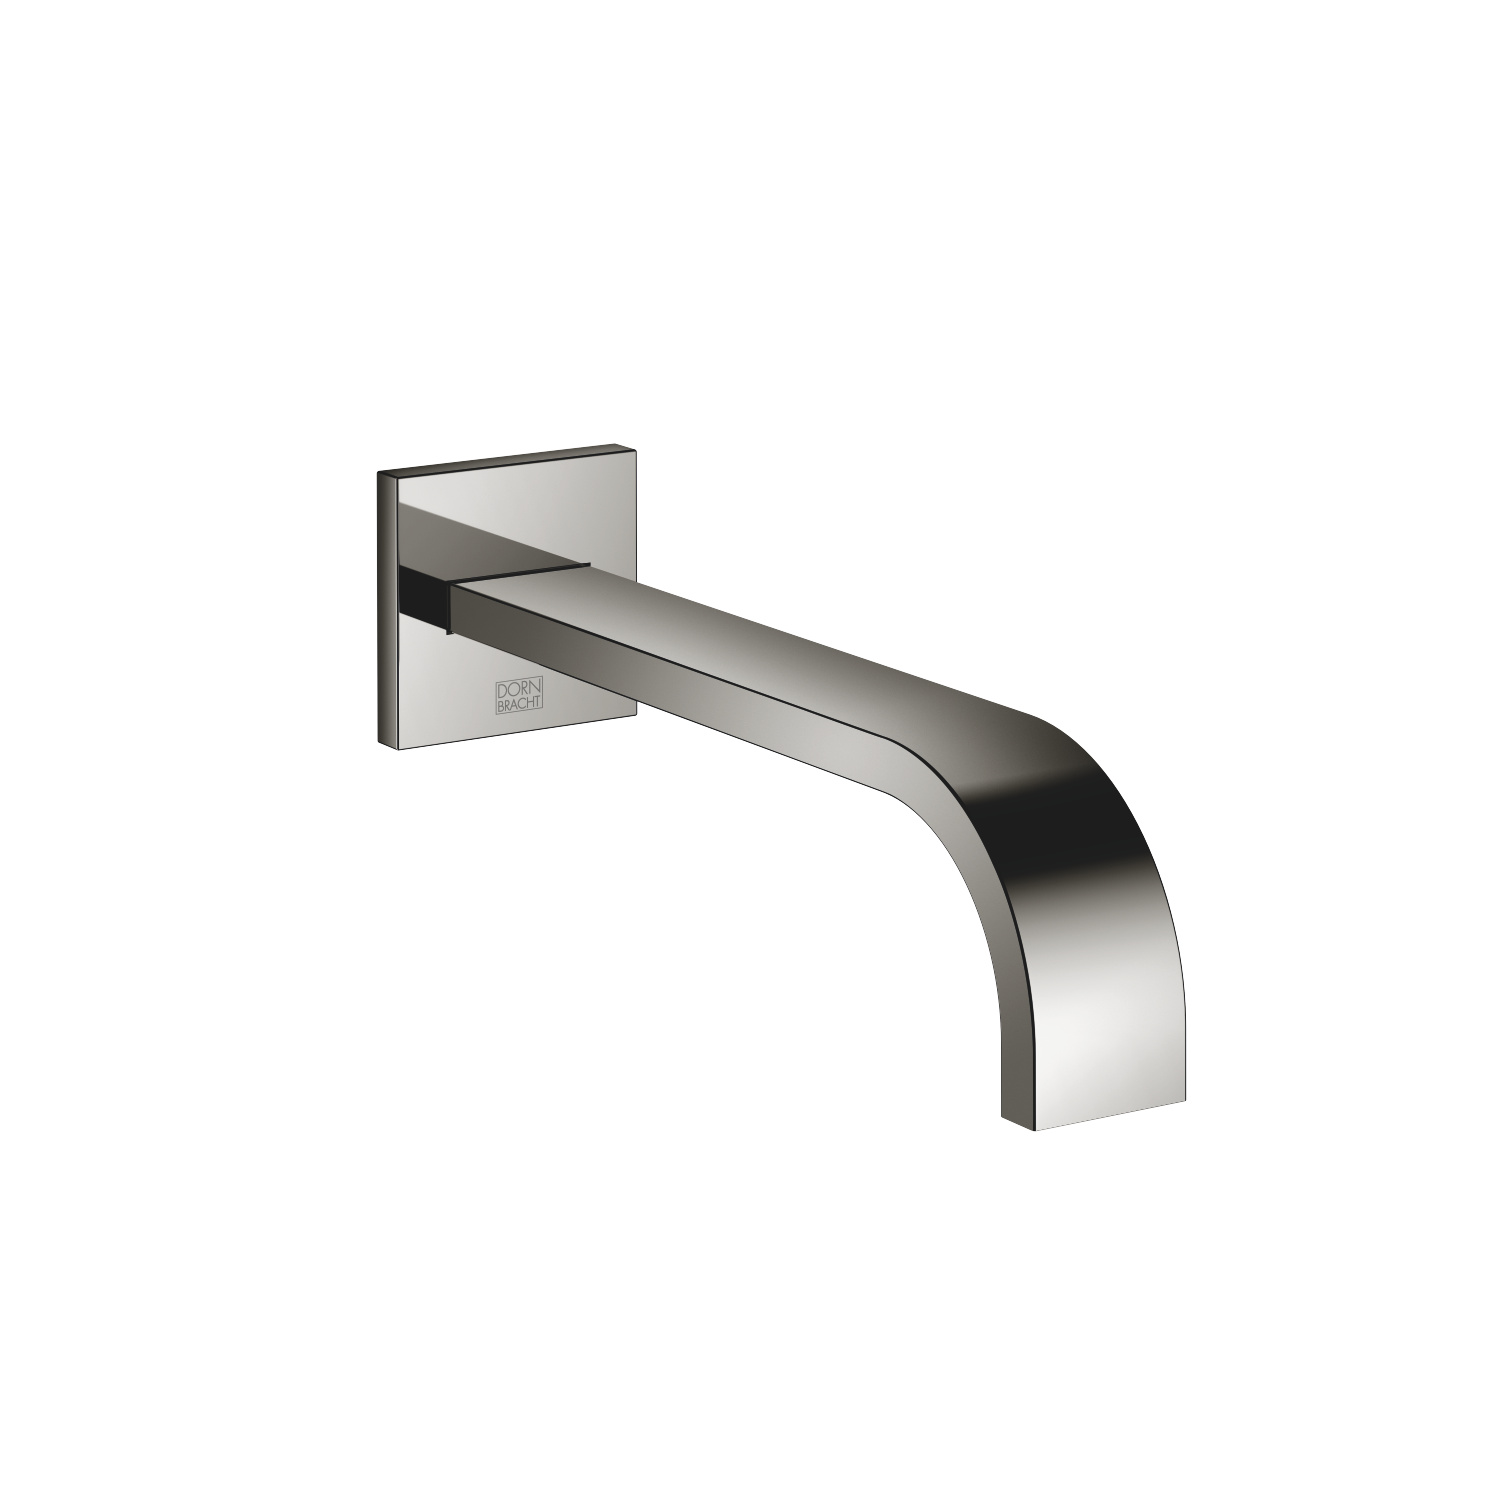 Tub spout for wall-mounted installation - platinum - 13 801 782-08